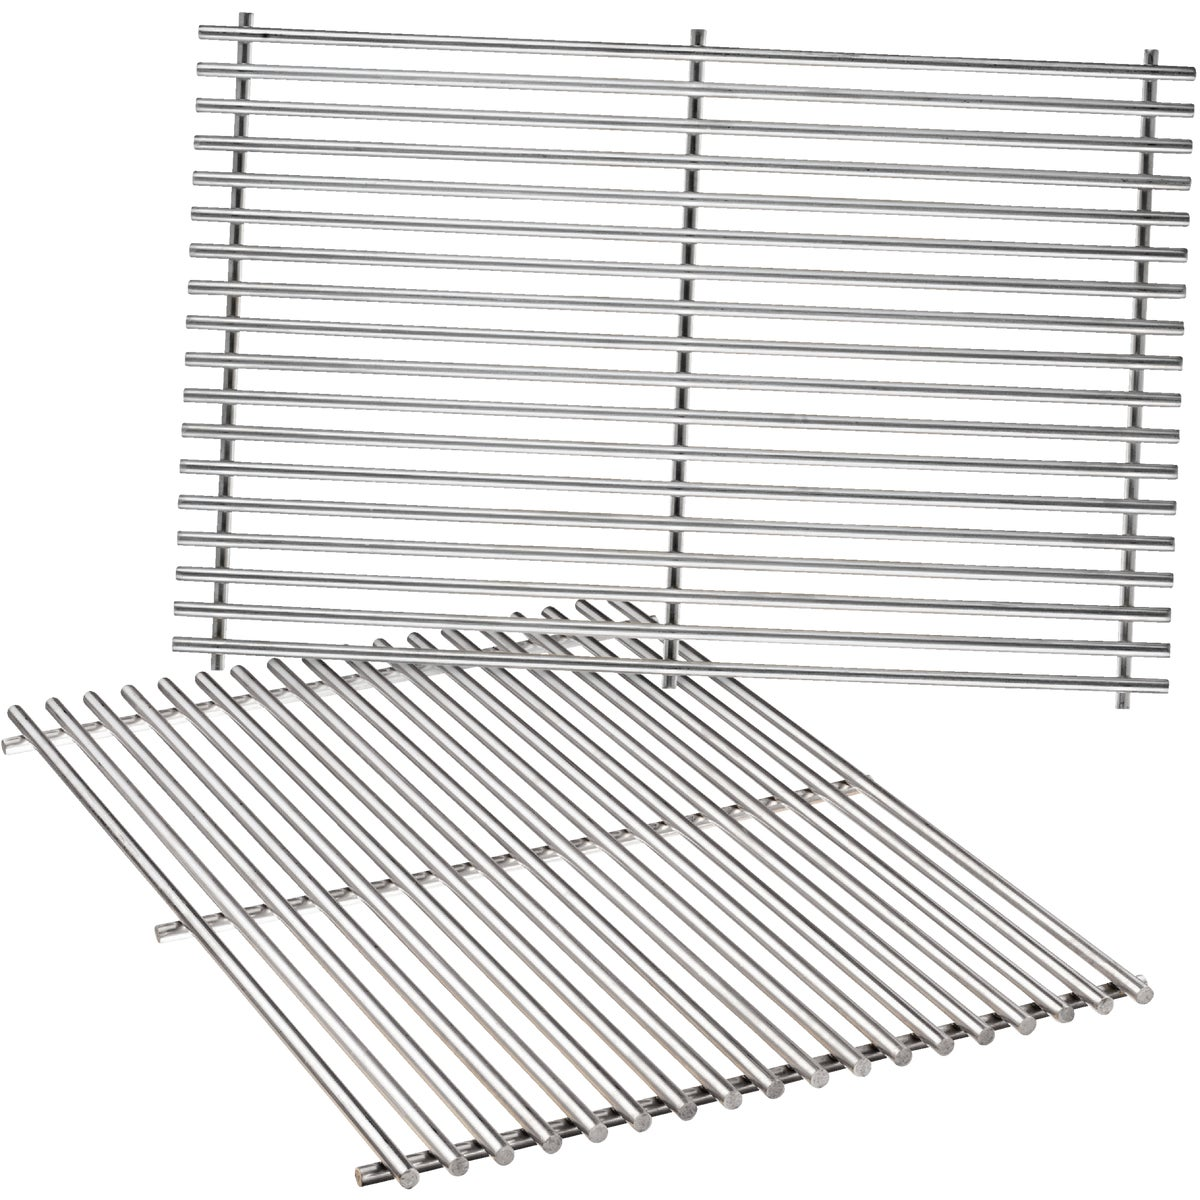 SS COOKING GRATES - 7528 by Weber